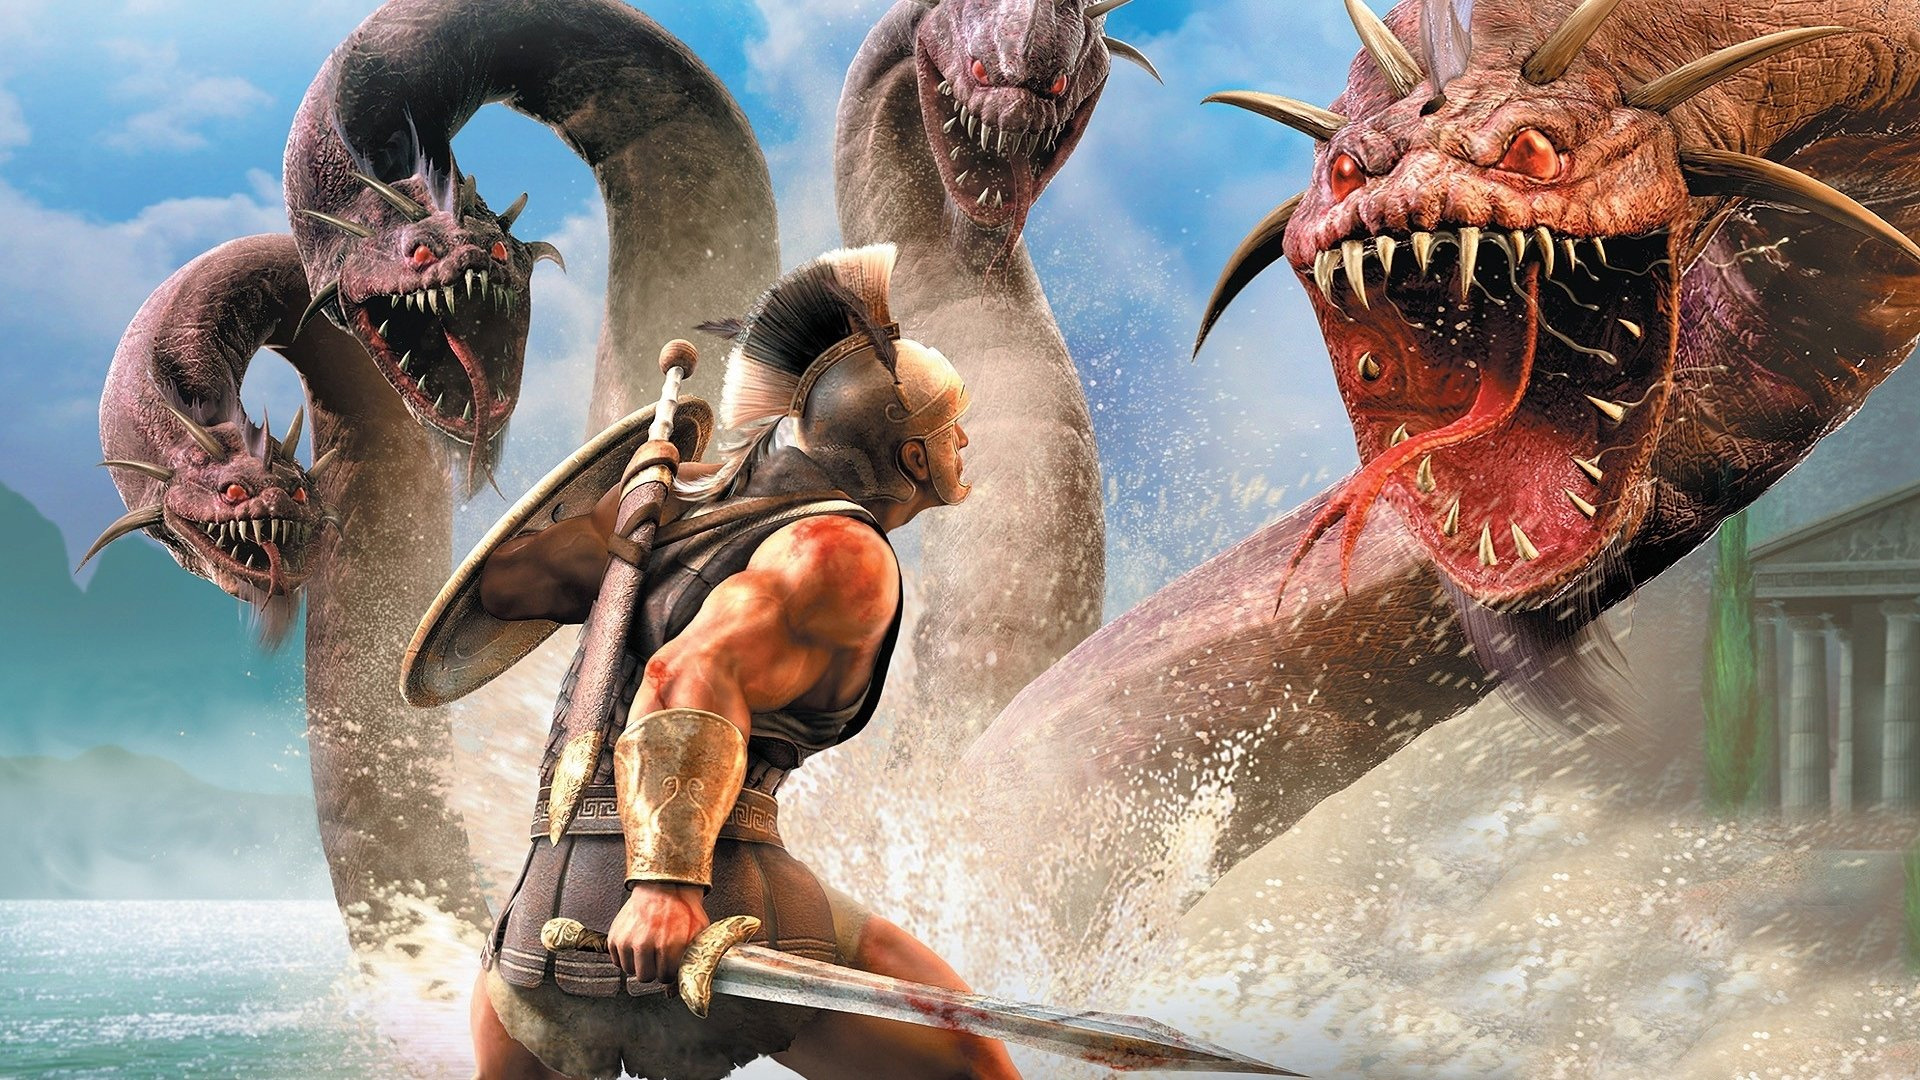 Action-RPG Titan Quest Headed To Switch, PS4, And Xbox One Next Year